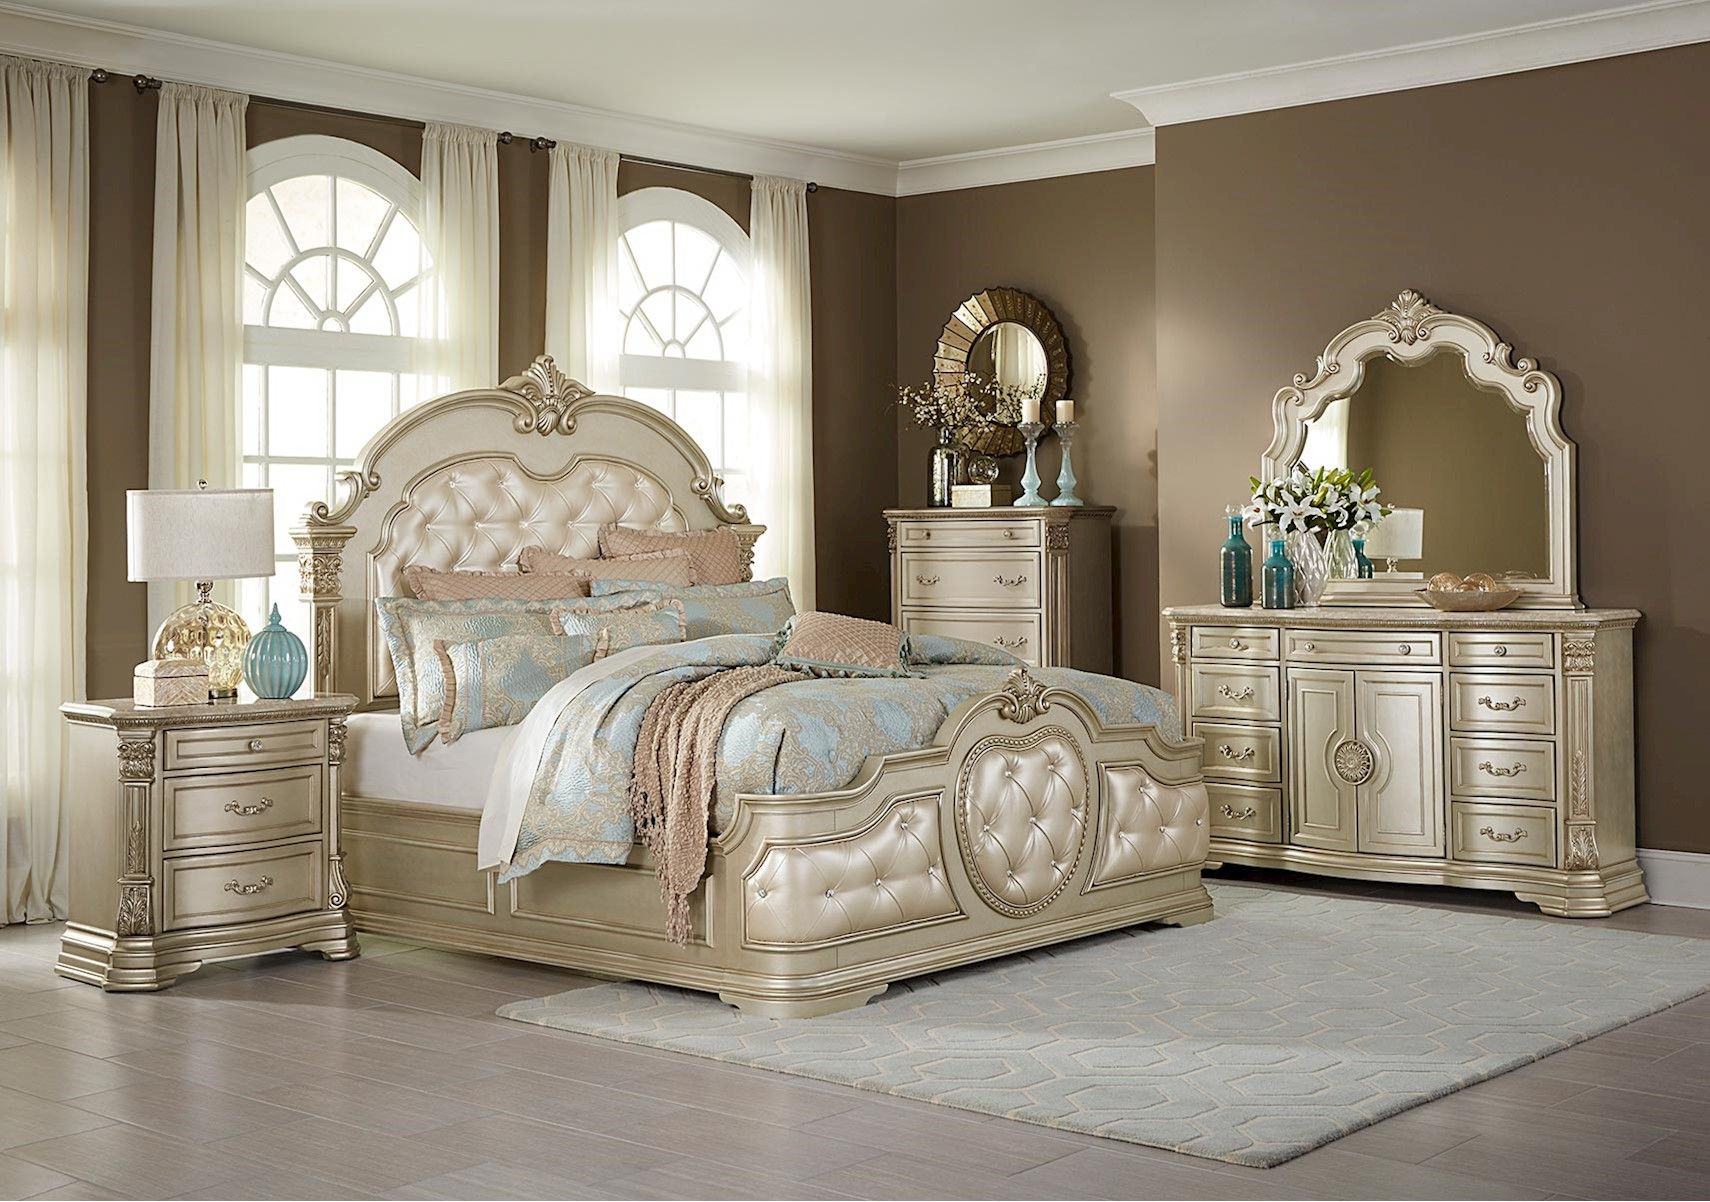 Lacks Monteria 4 Pc Queen Bedroom Set Glamorous Living Glam